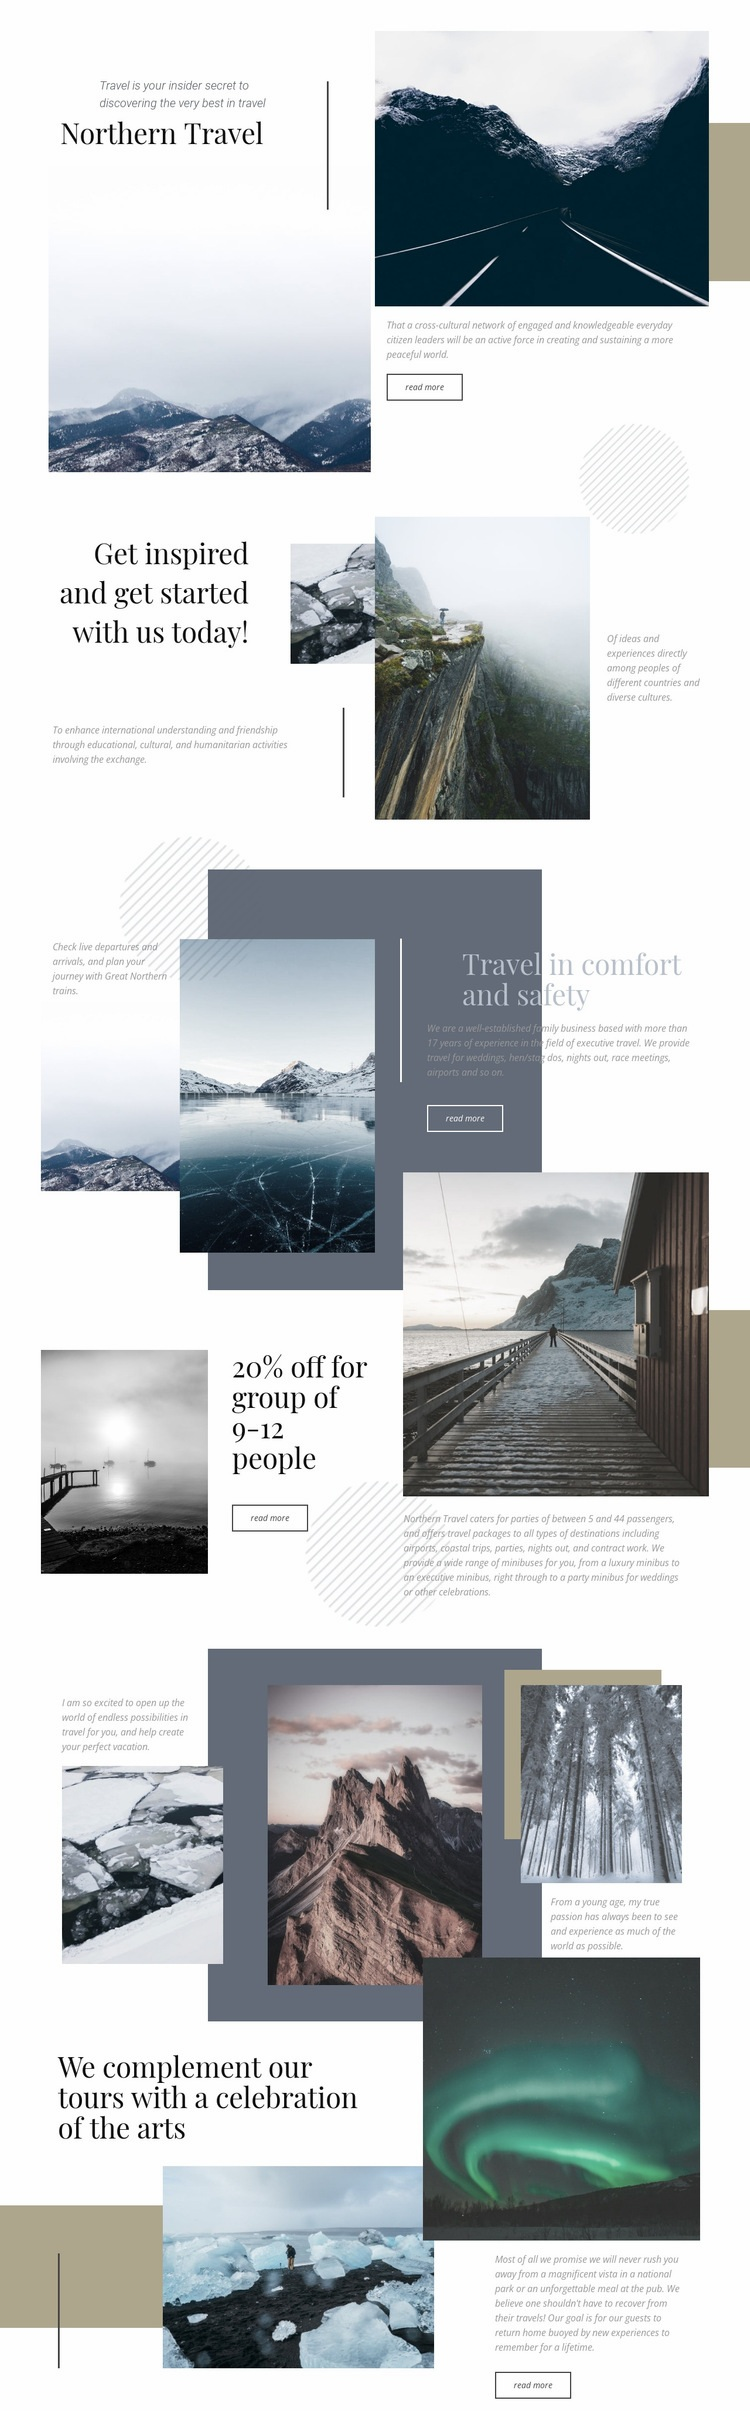 Northern Travel Html Code Example